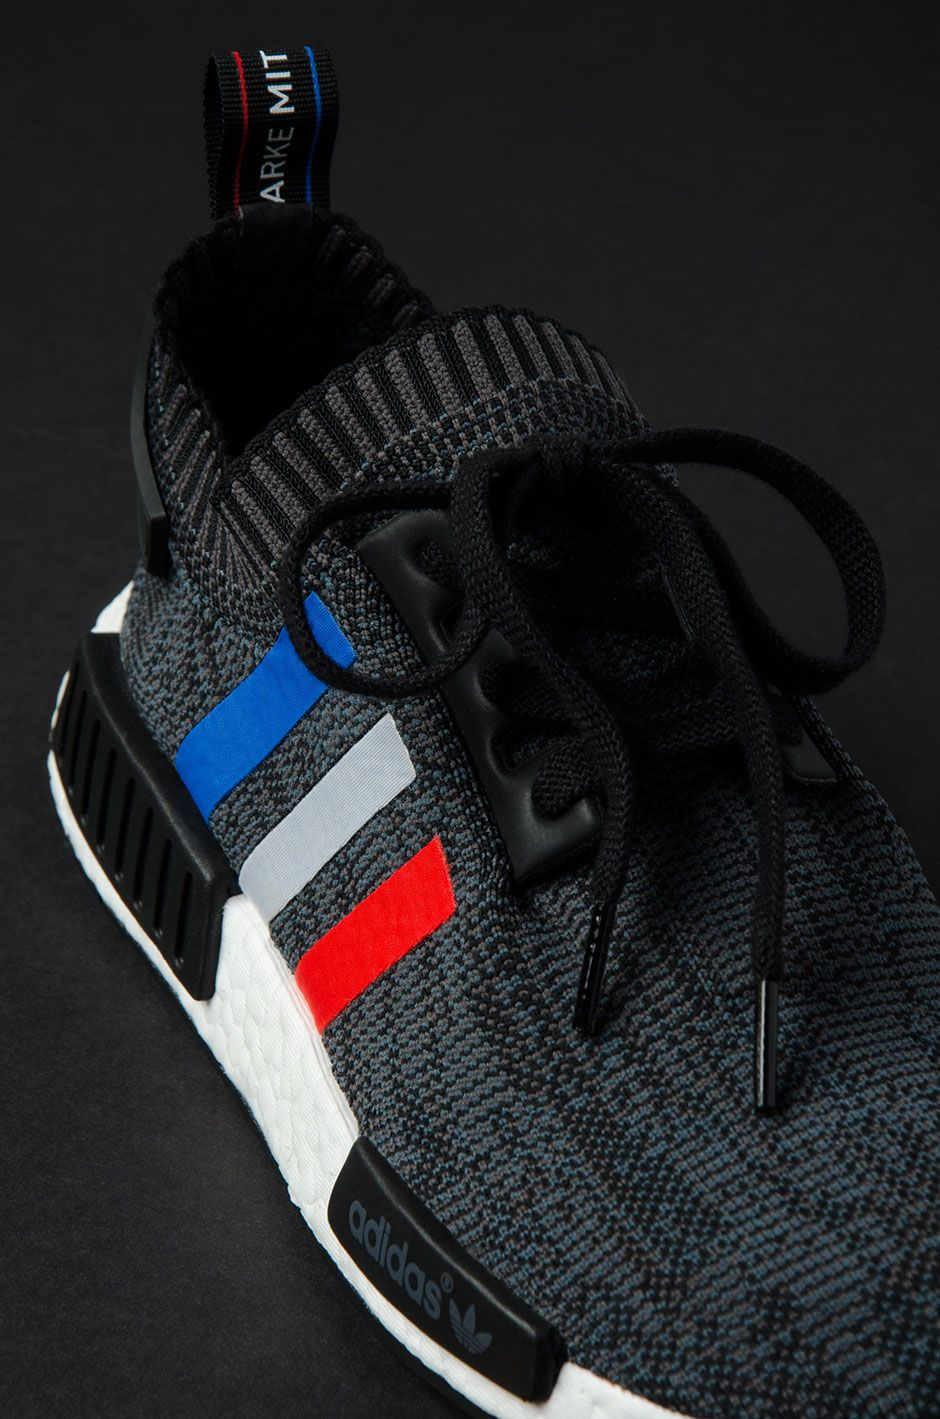 630074ca0 The adidas NMD R1 Tri-Color Pack will release this November 2016 featuring  2 Primeknit constructions. More adidas NMD release date info here